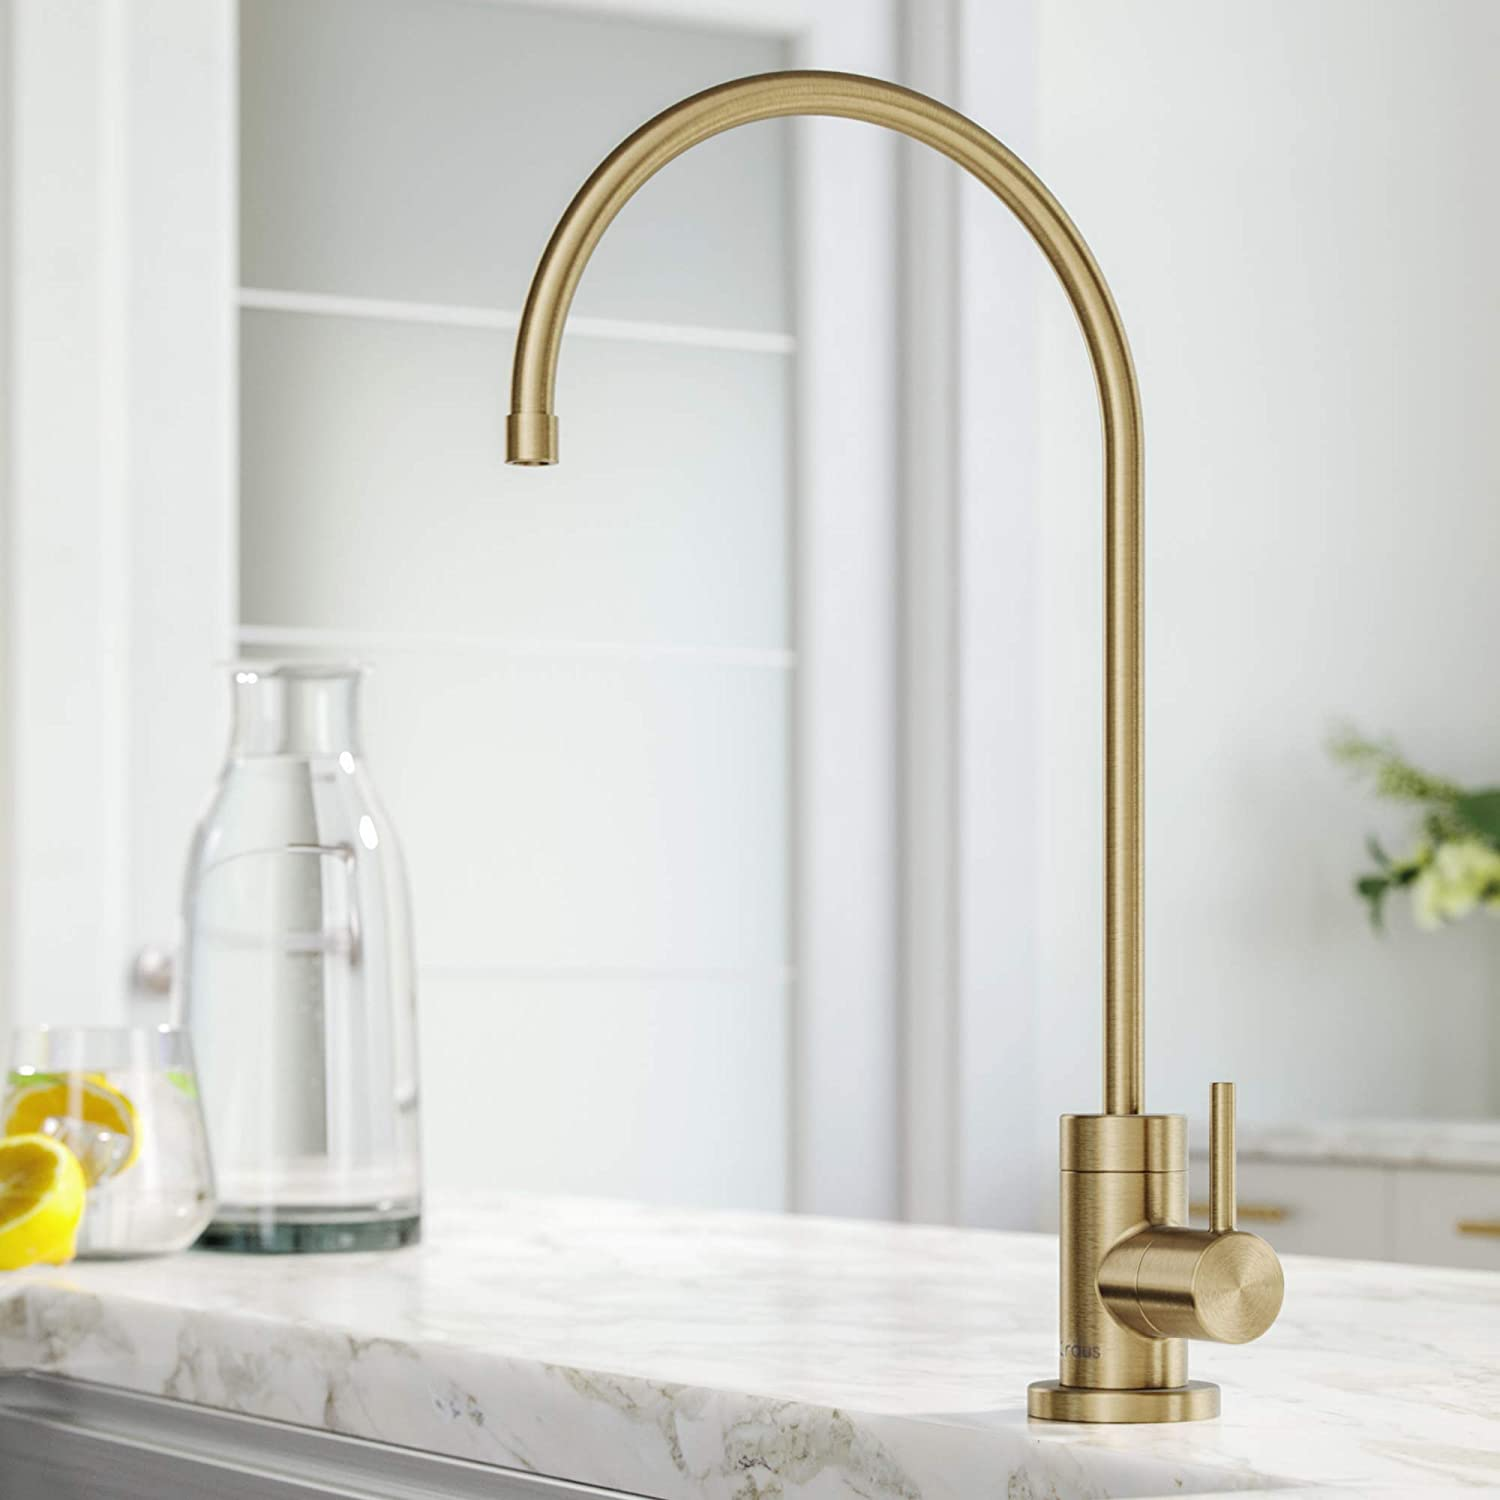 Kraus FF-100SFACB Purita 100% Lead Kitchen Water Filter Faucet, Spot Free Antique Champagne Bronze